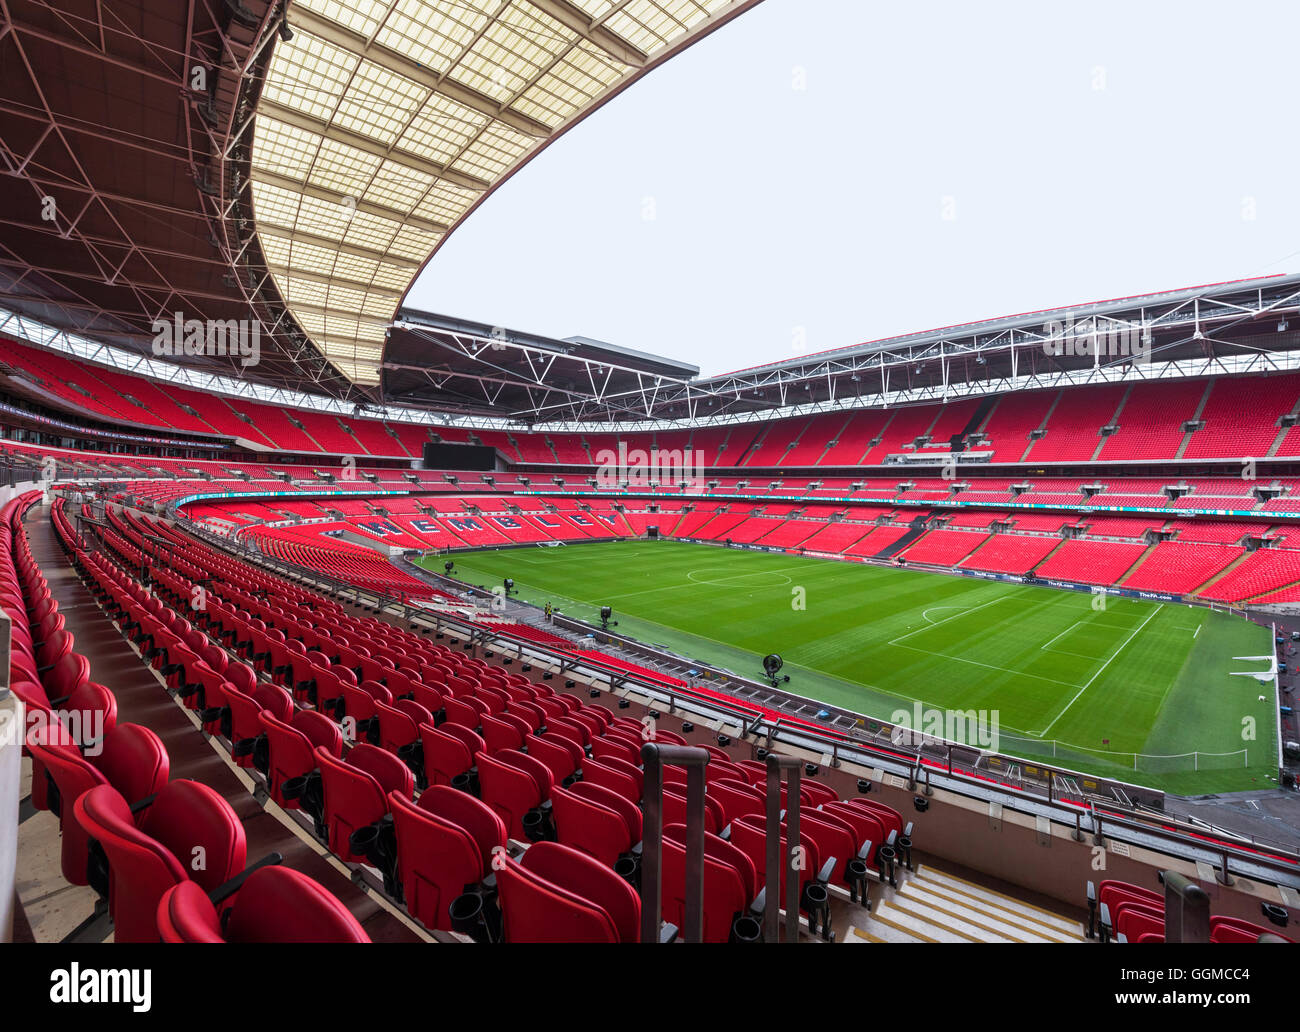 London, the UK - May 2016: View on Wembley stadium - the national football arena - Stock Image